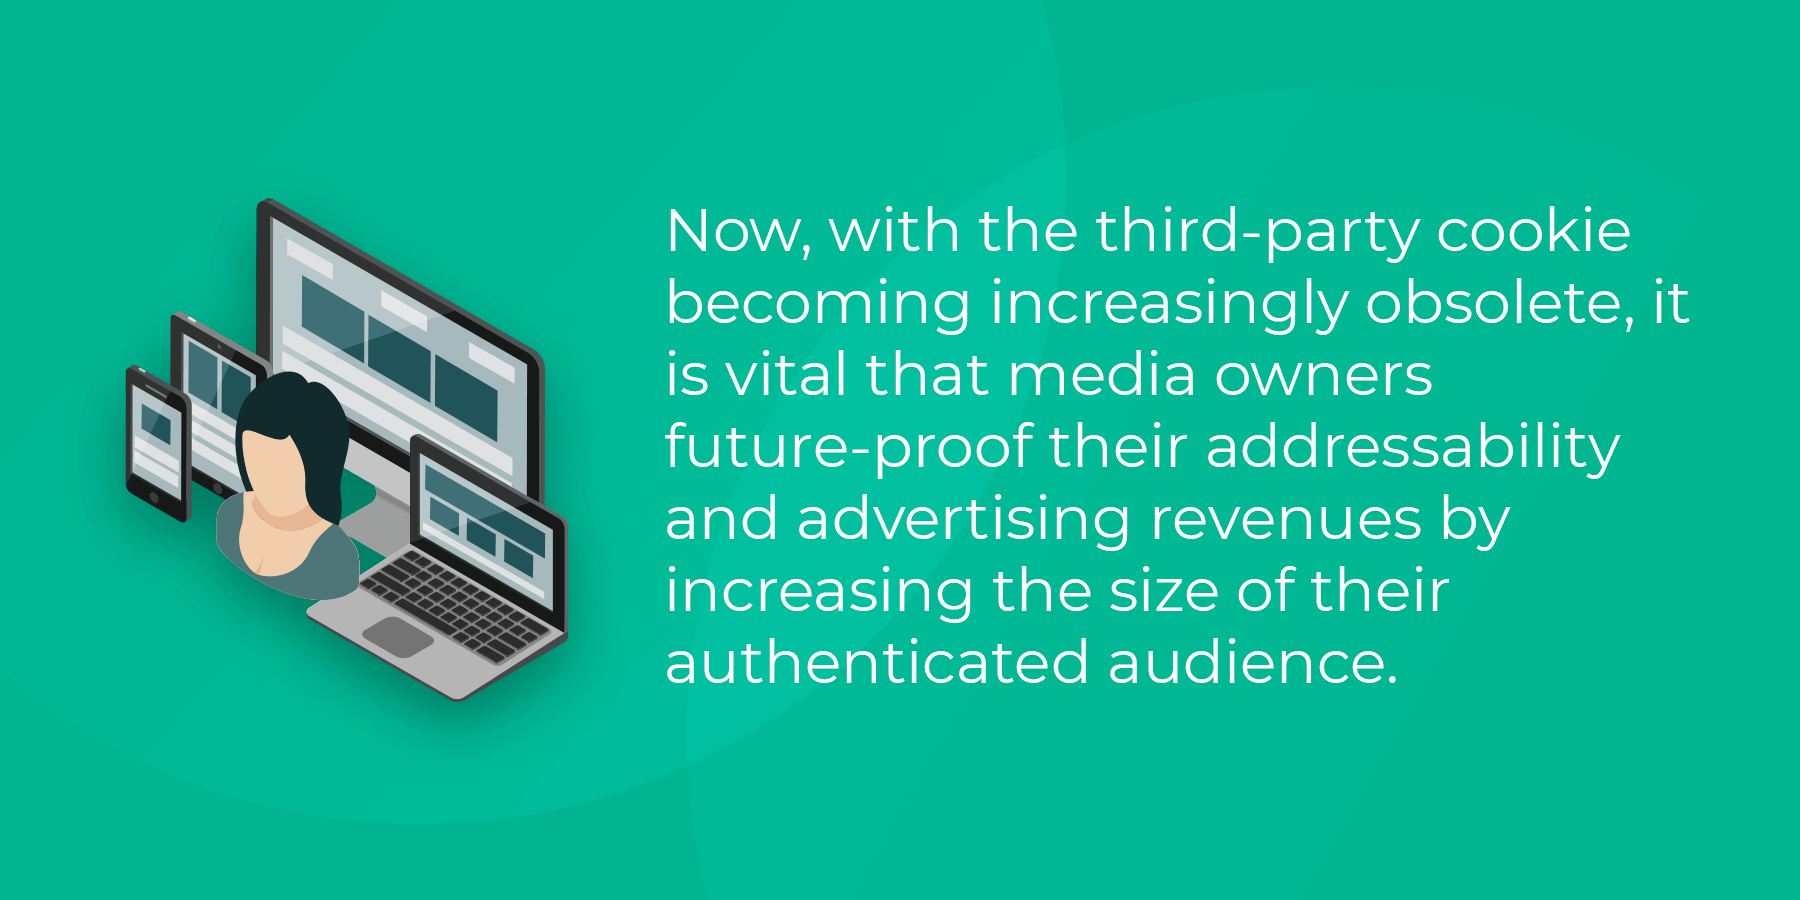 It is vital that media owners future-proof addressability and advertising revenues bu increasing the size of their authenticated audience.